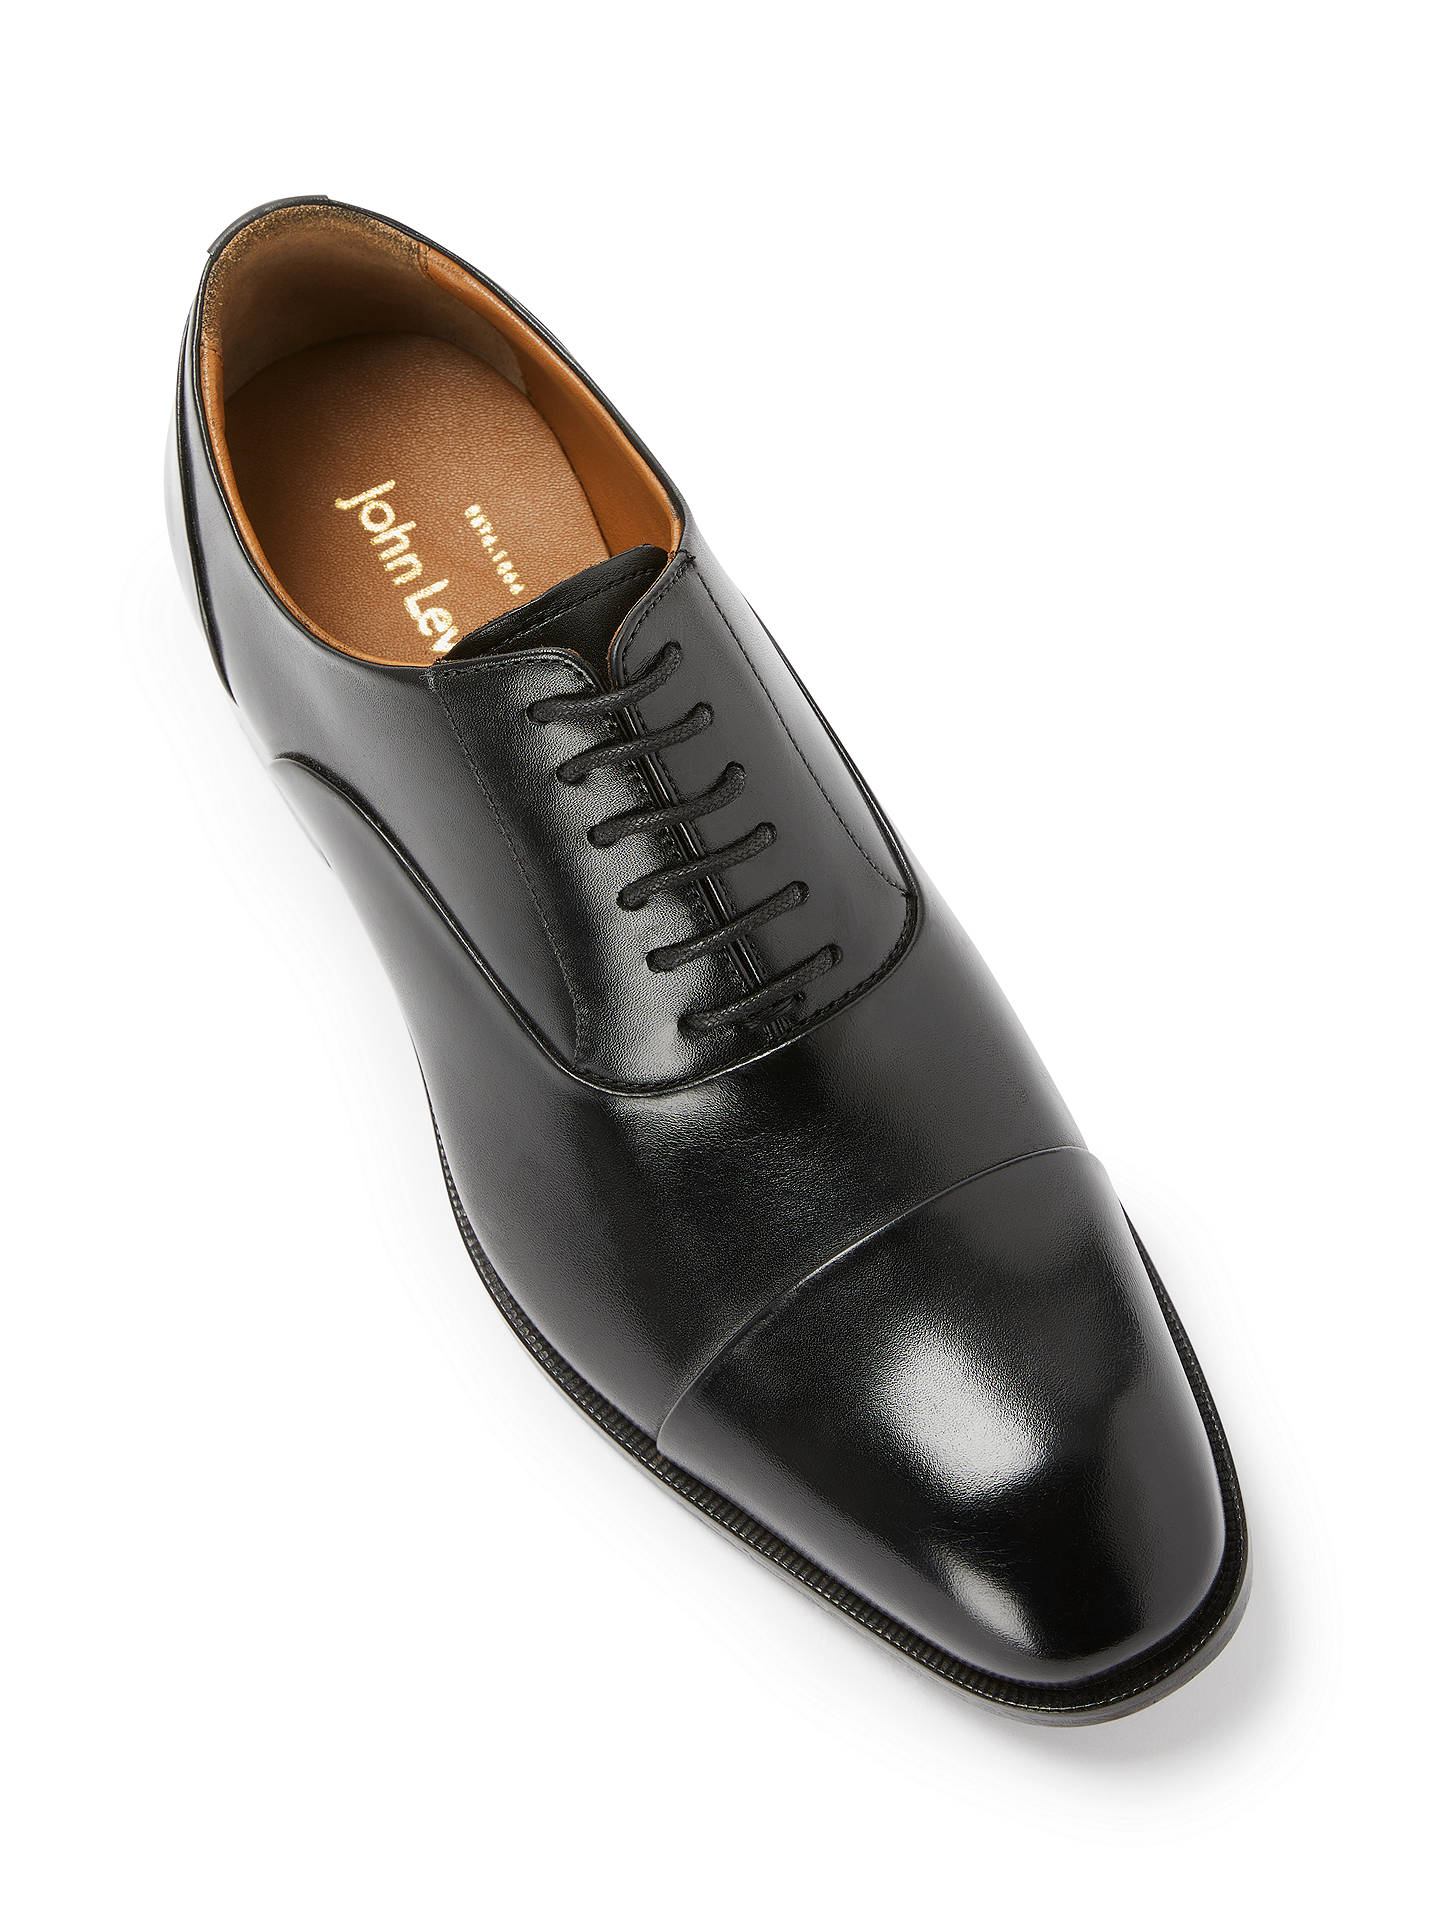 abb6a105c6105 ... Buy John Lewis & Partners Goodwin Oxford Leather Lace-Up Shoes, Black,  7 ...